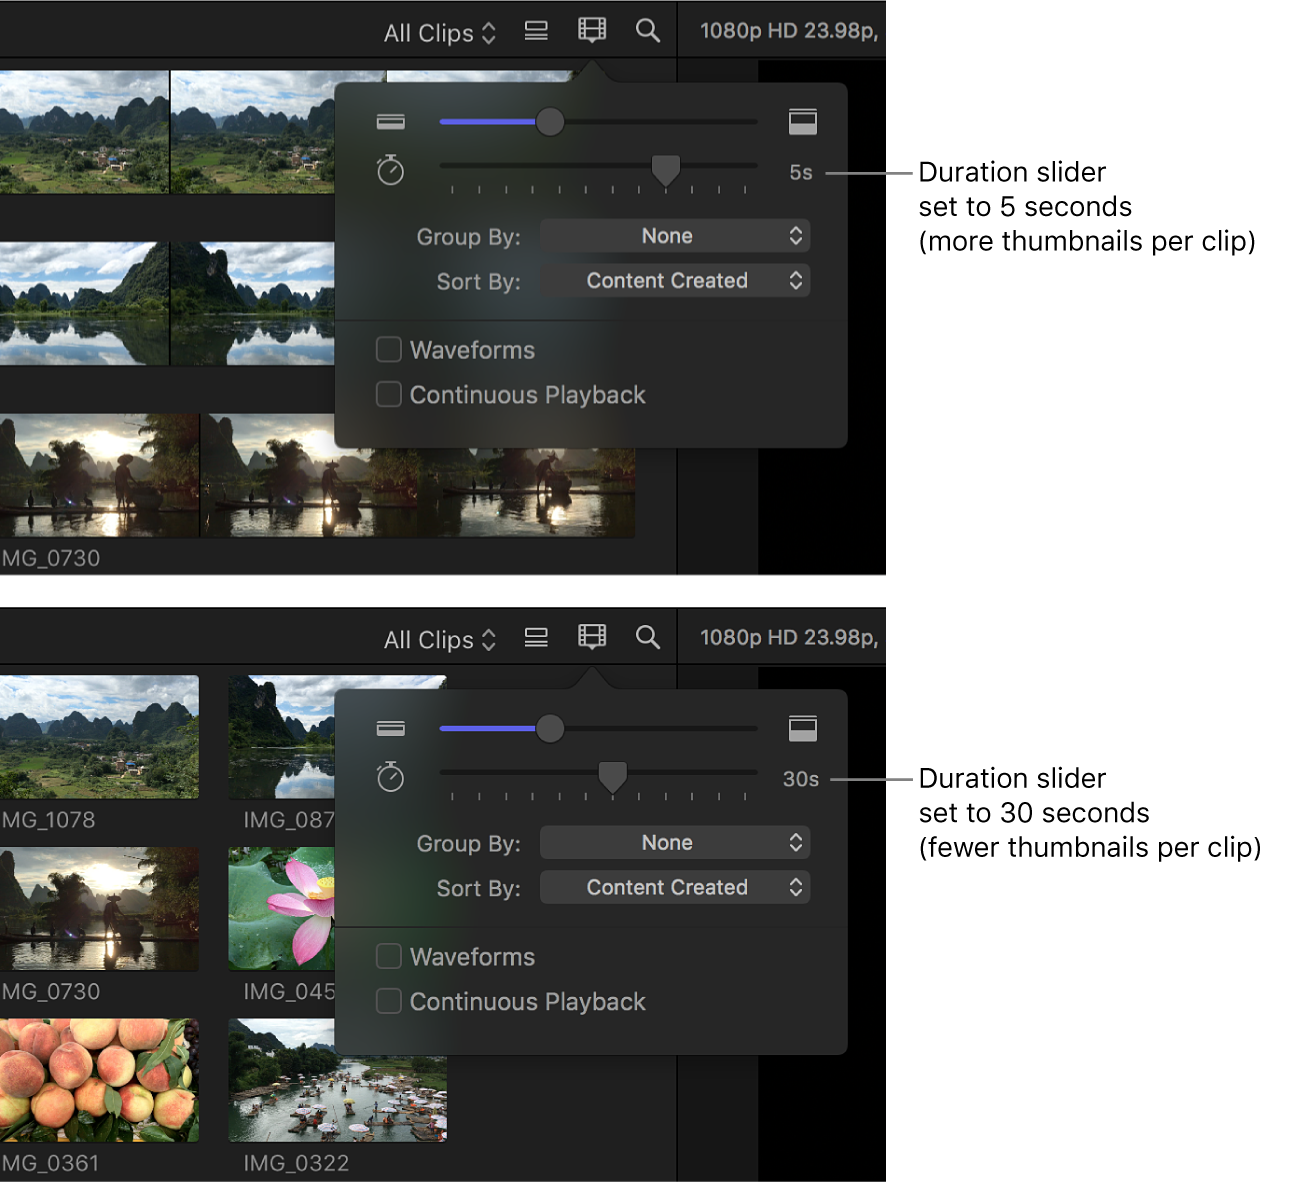 A comparison of the visual length of filmstrips in the browser when the Duration slider is set to 5 seconds and 30 seconds